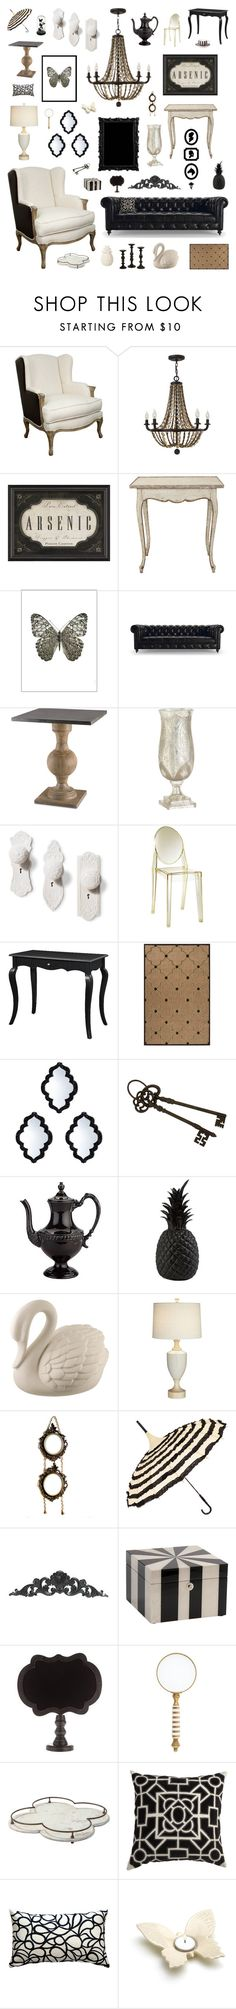 """modern victorian"" by crystalliora on Polyvore featuring interior, interiors, interior design, home, home decor, interior decorating, Dot & Bo, Fredrick Ramond, Amara and Currey & Company"